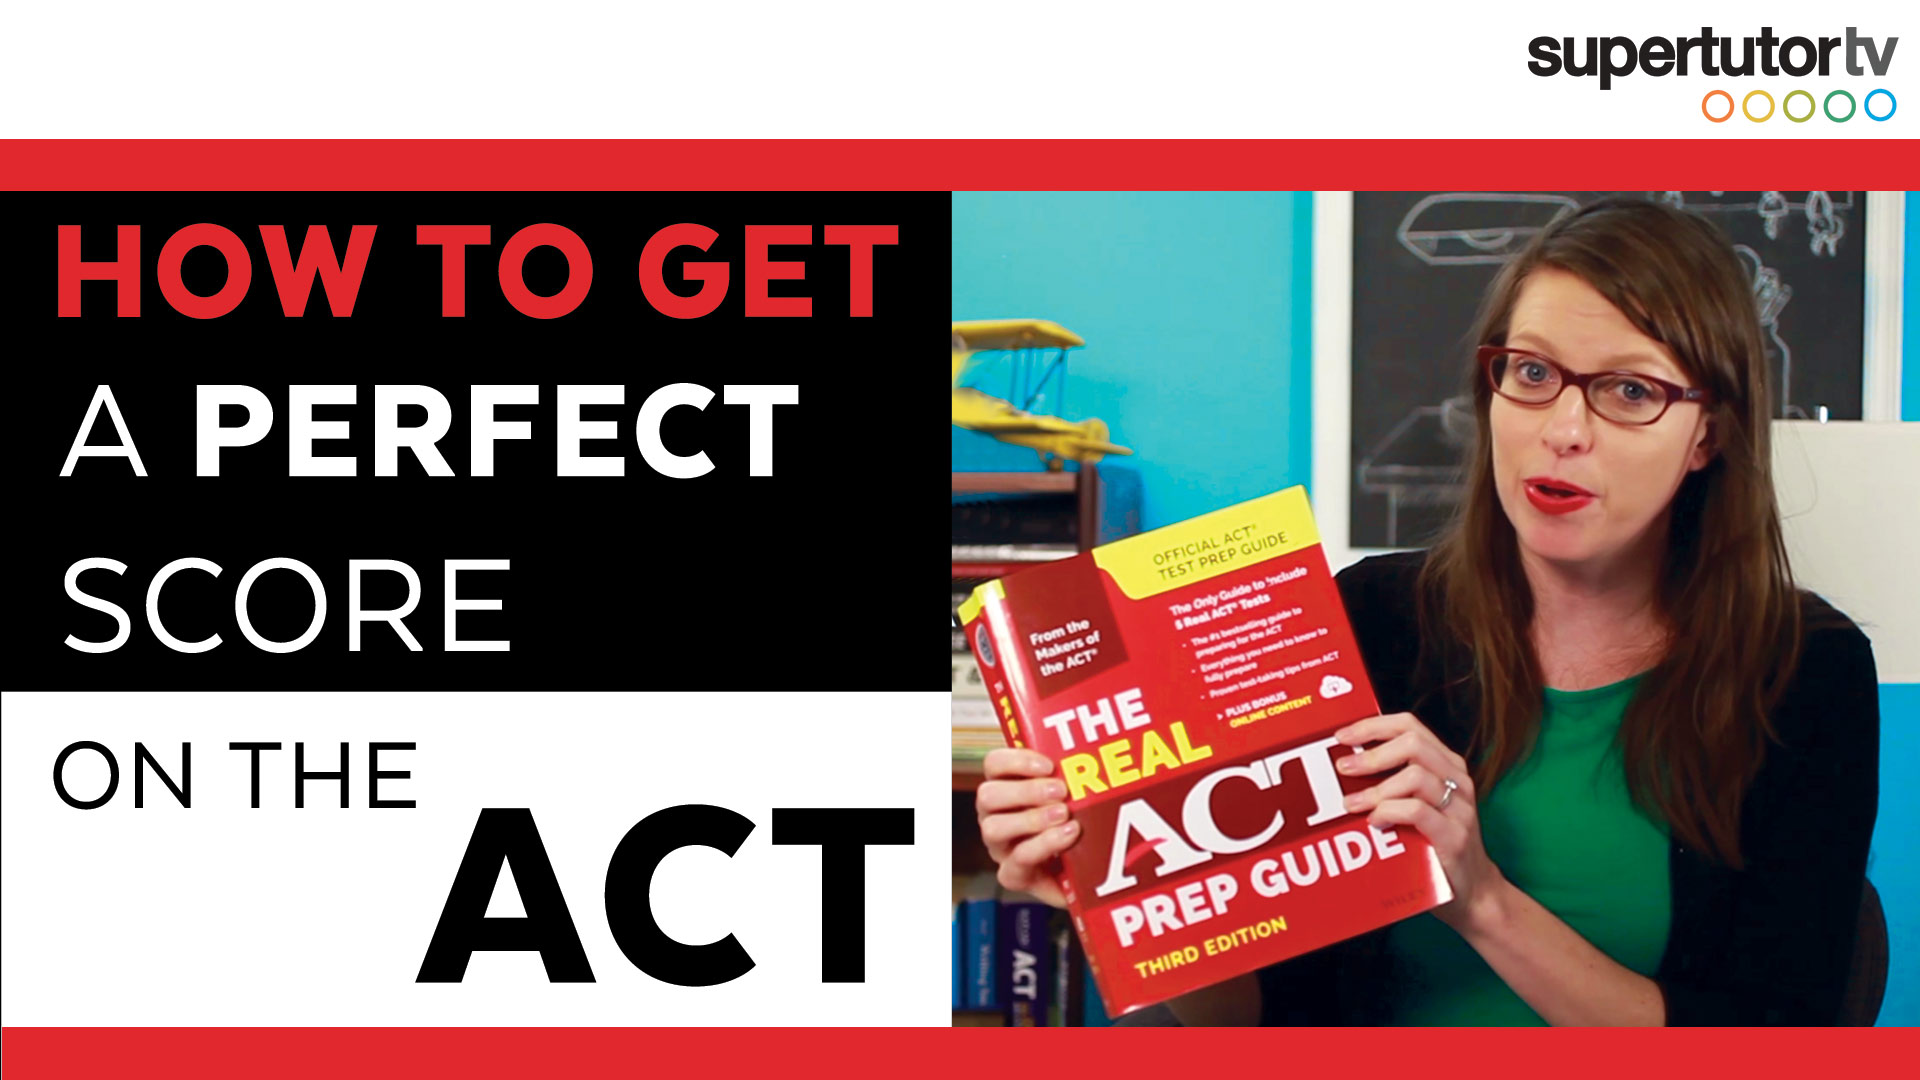 How to Get a Perfect Score on the ACT: 10 Tips!